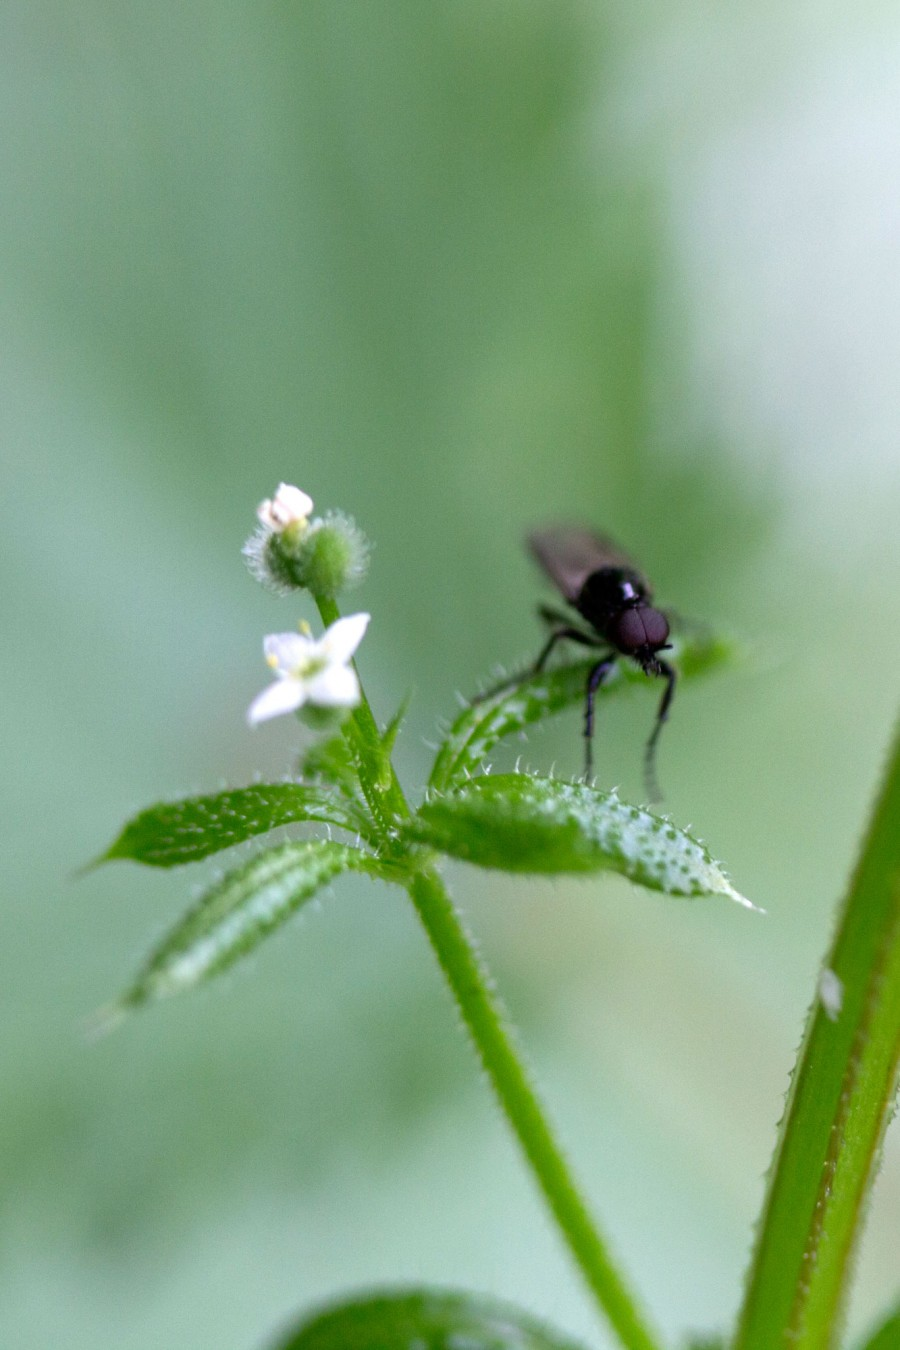 Fly on goose grass.